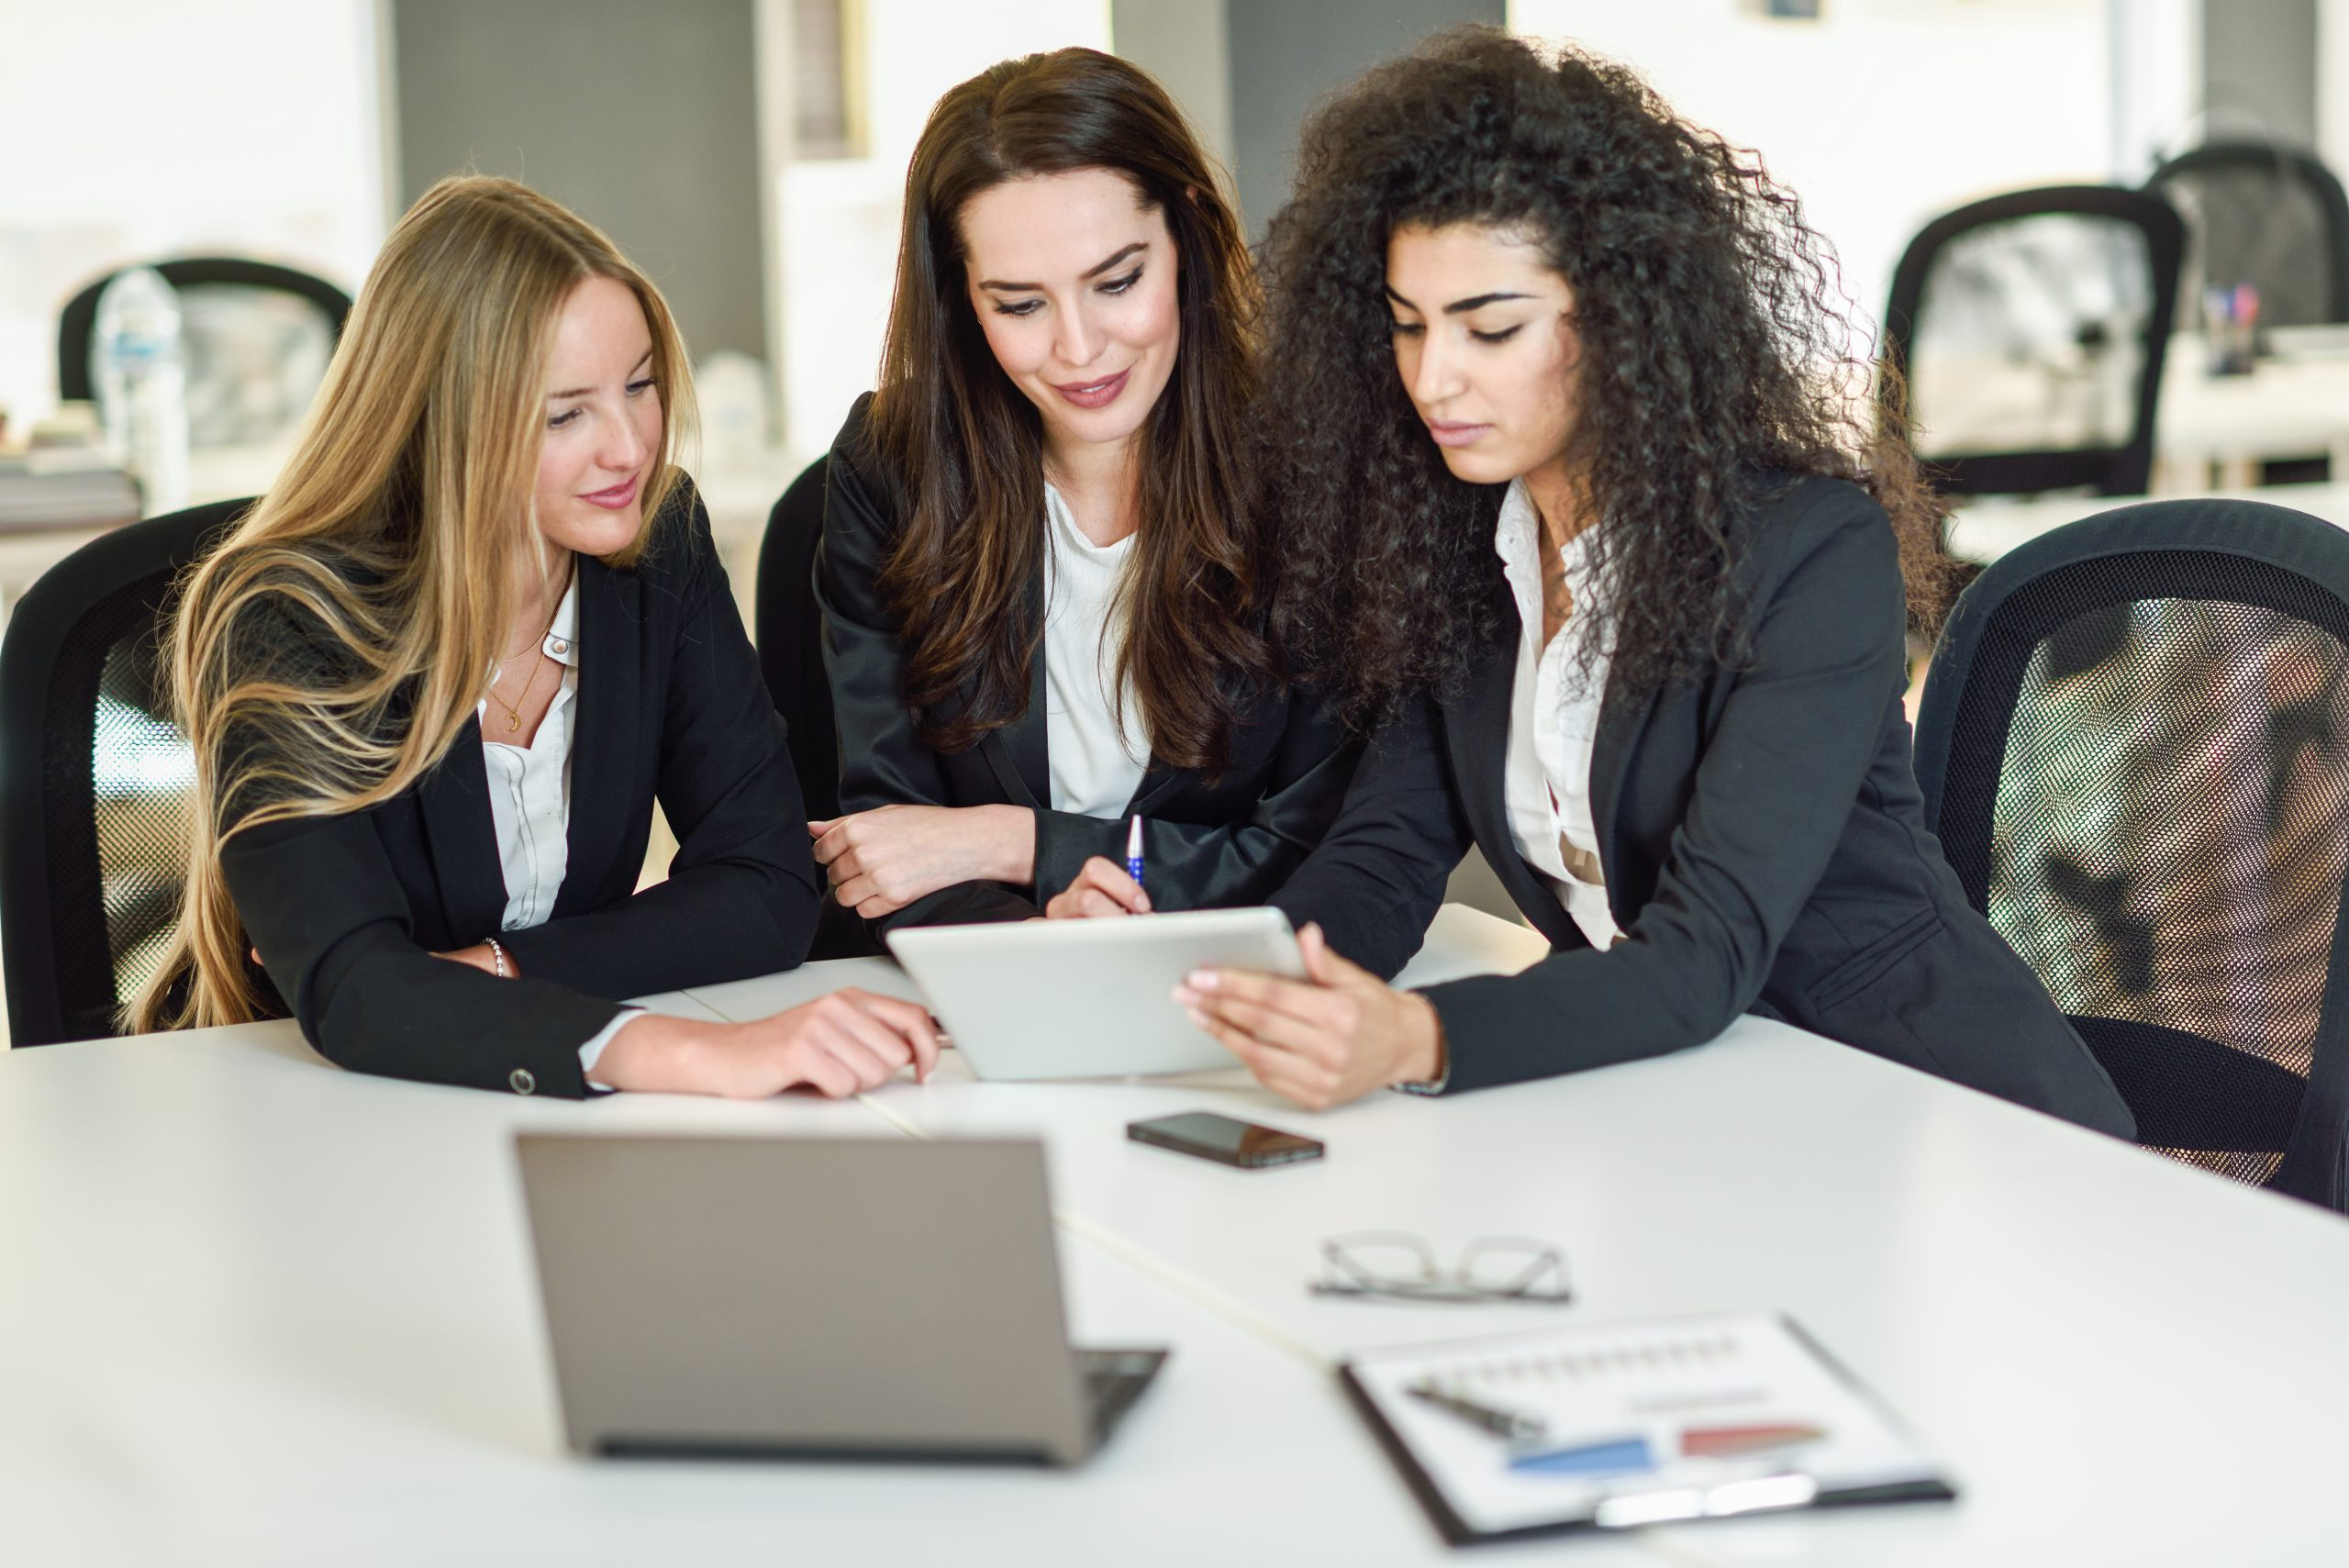 Three Business women working together with requirements for business